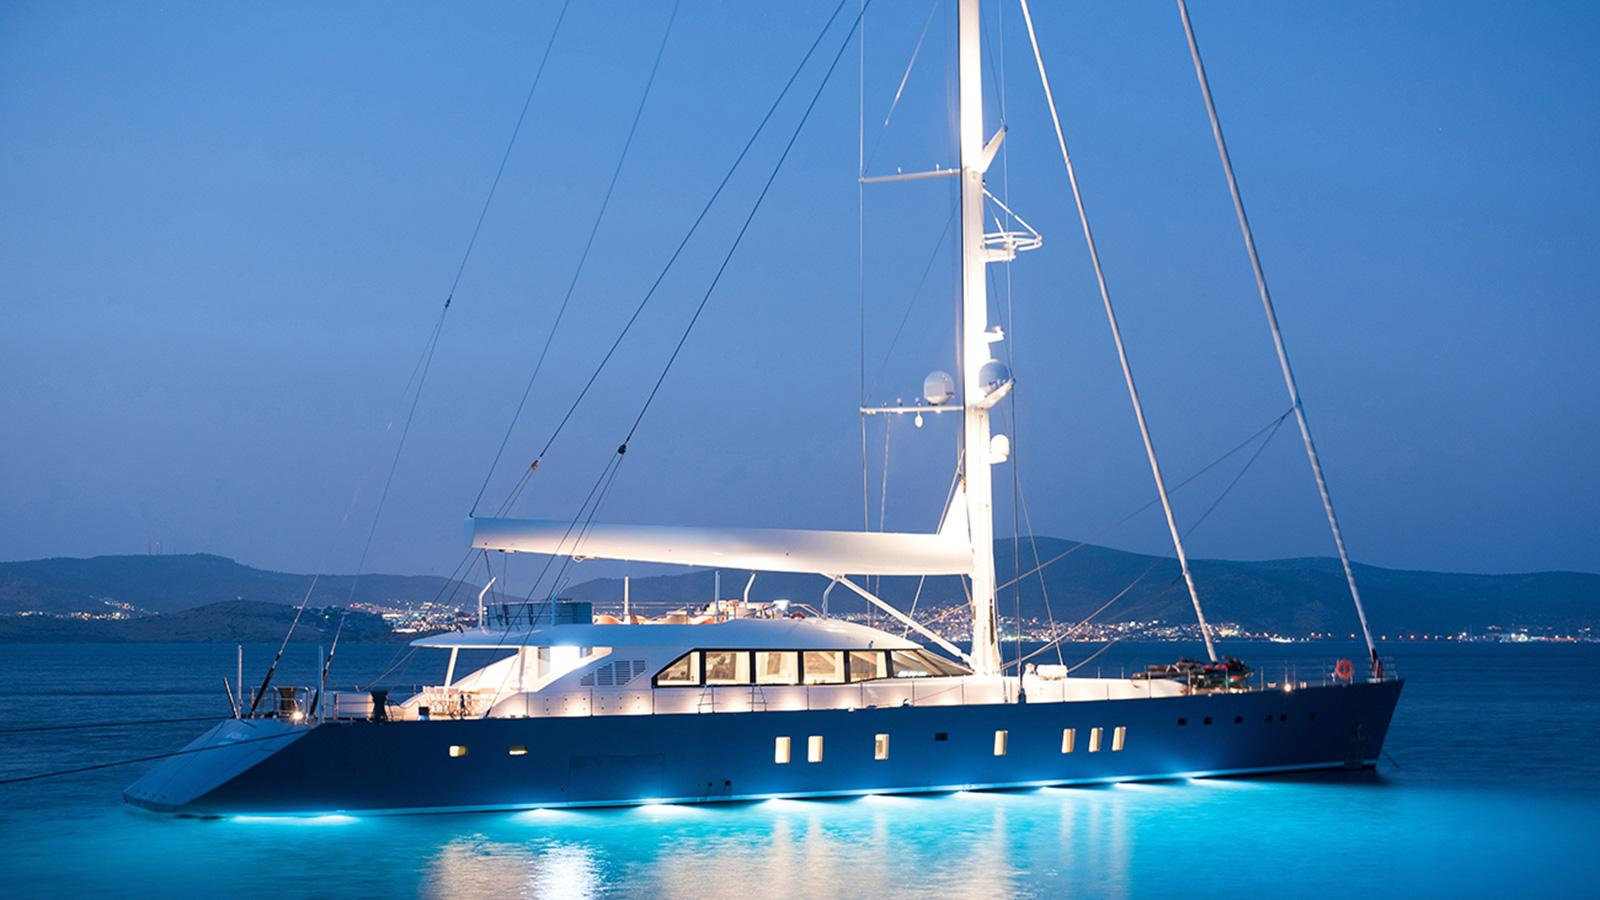 Ada Yacht launches 50m sailing yacht All About U 2 in Turkey - Yacht